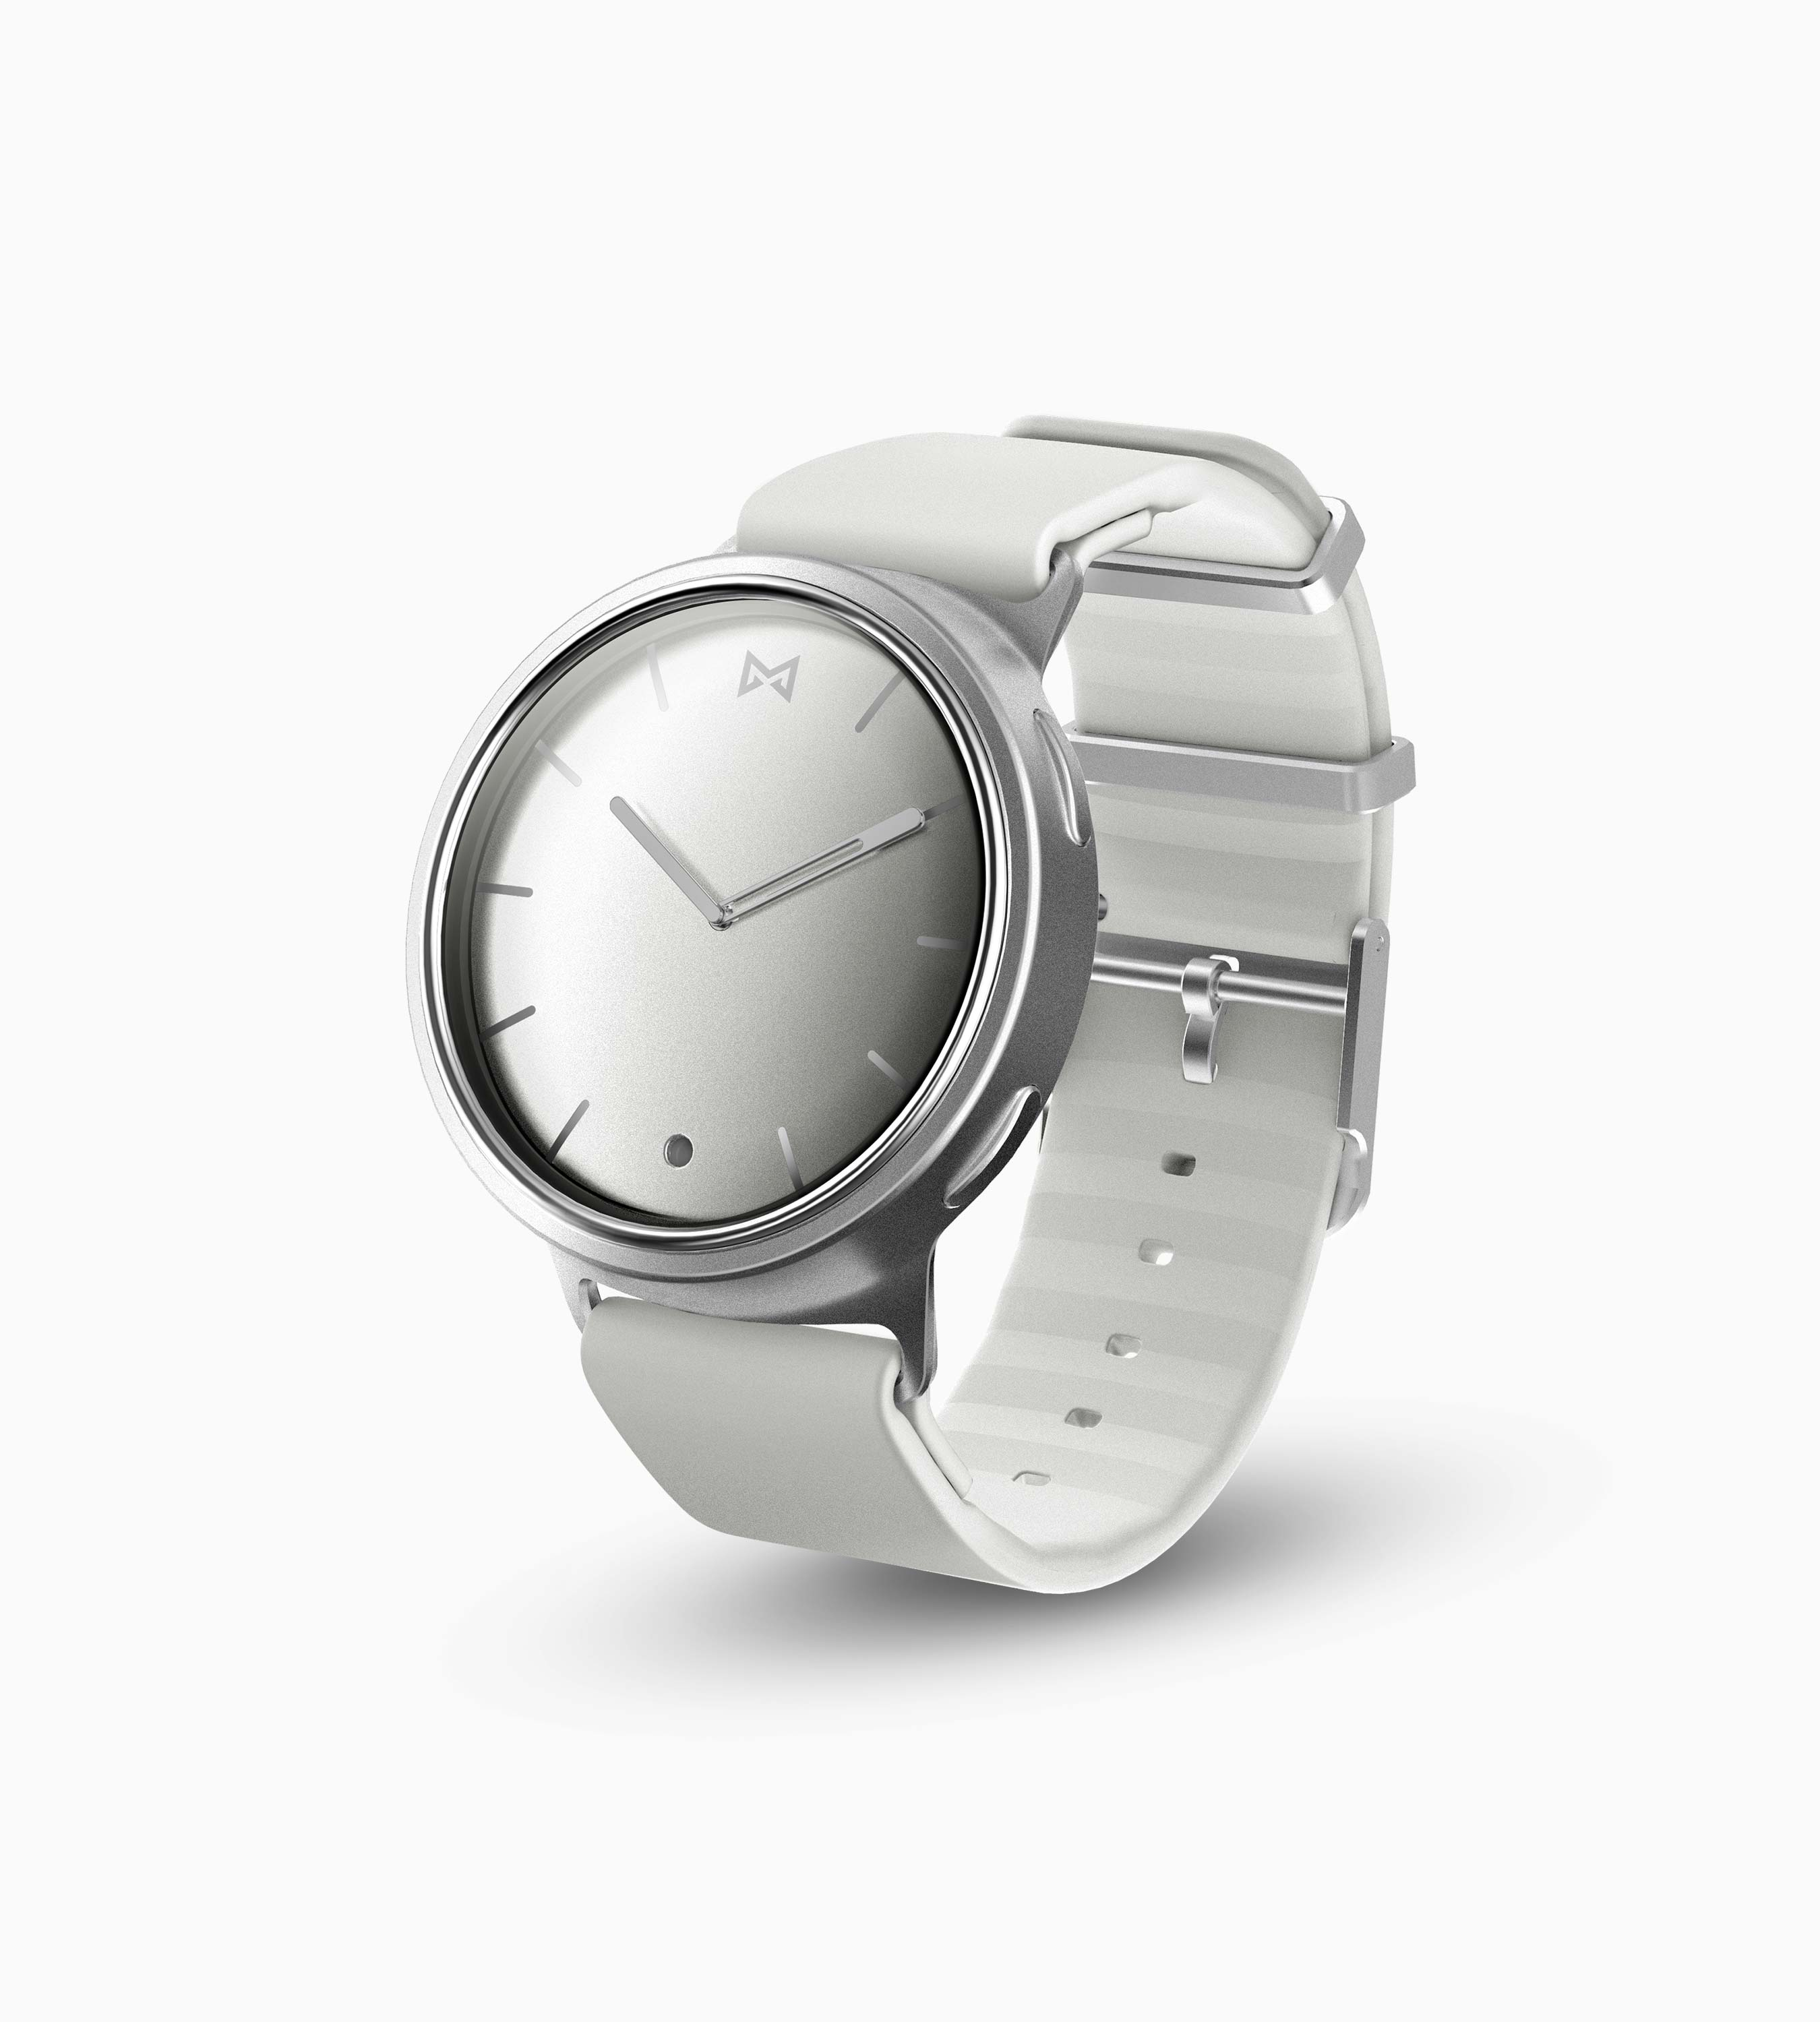 Misfit Phase Hybrid Smartwatch (Silver & White)